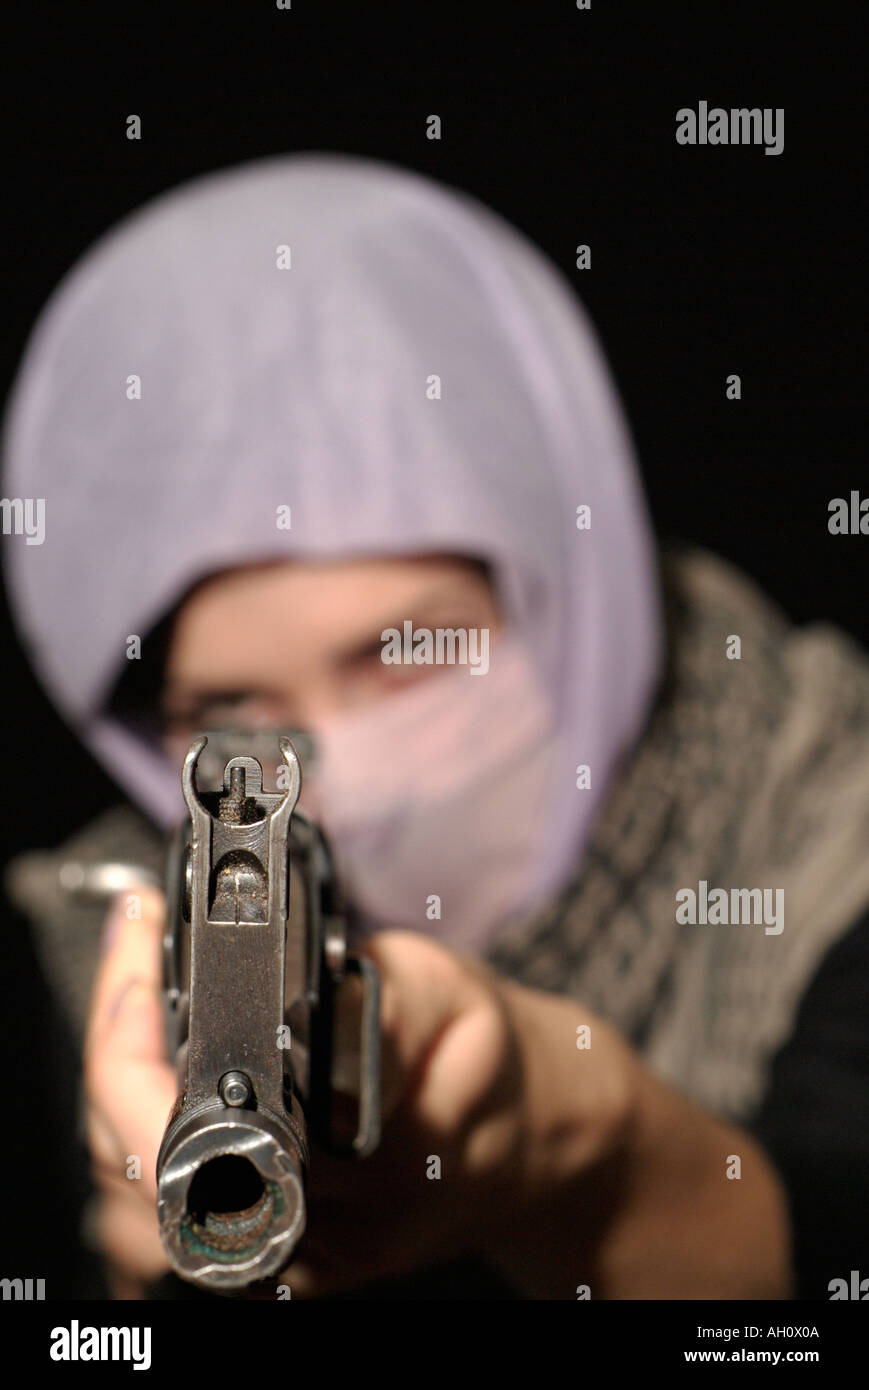 Female Extremist Fighter in Middle Eastern Dress with an AK47 Assault Rifle - Stock Image